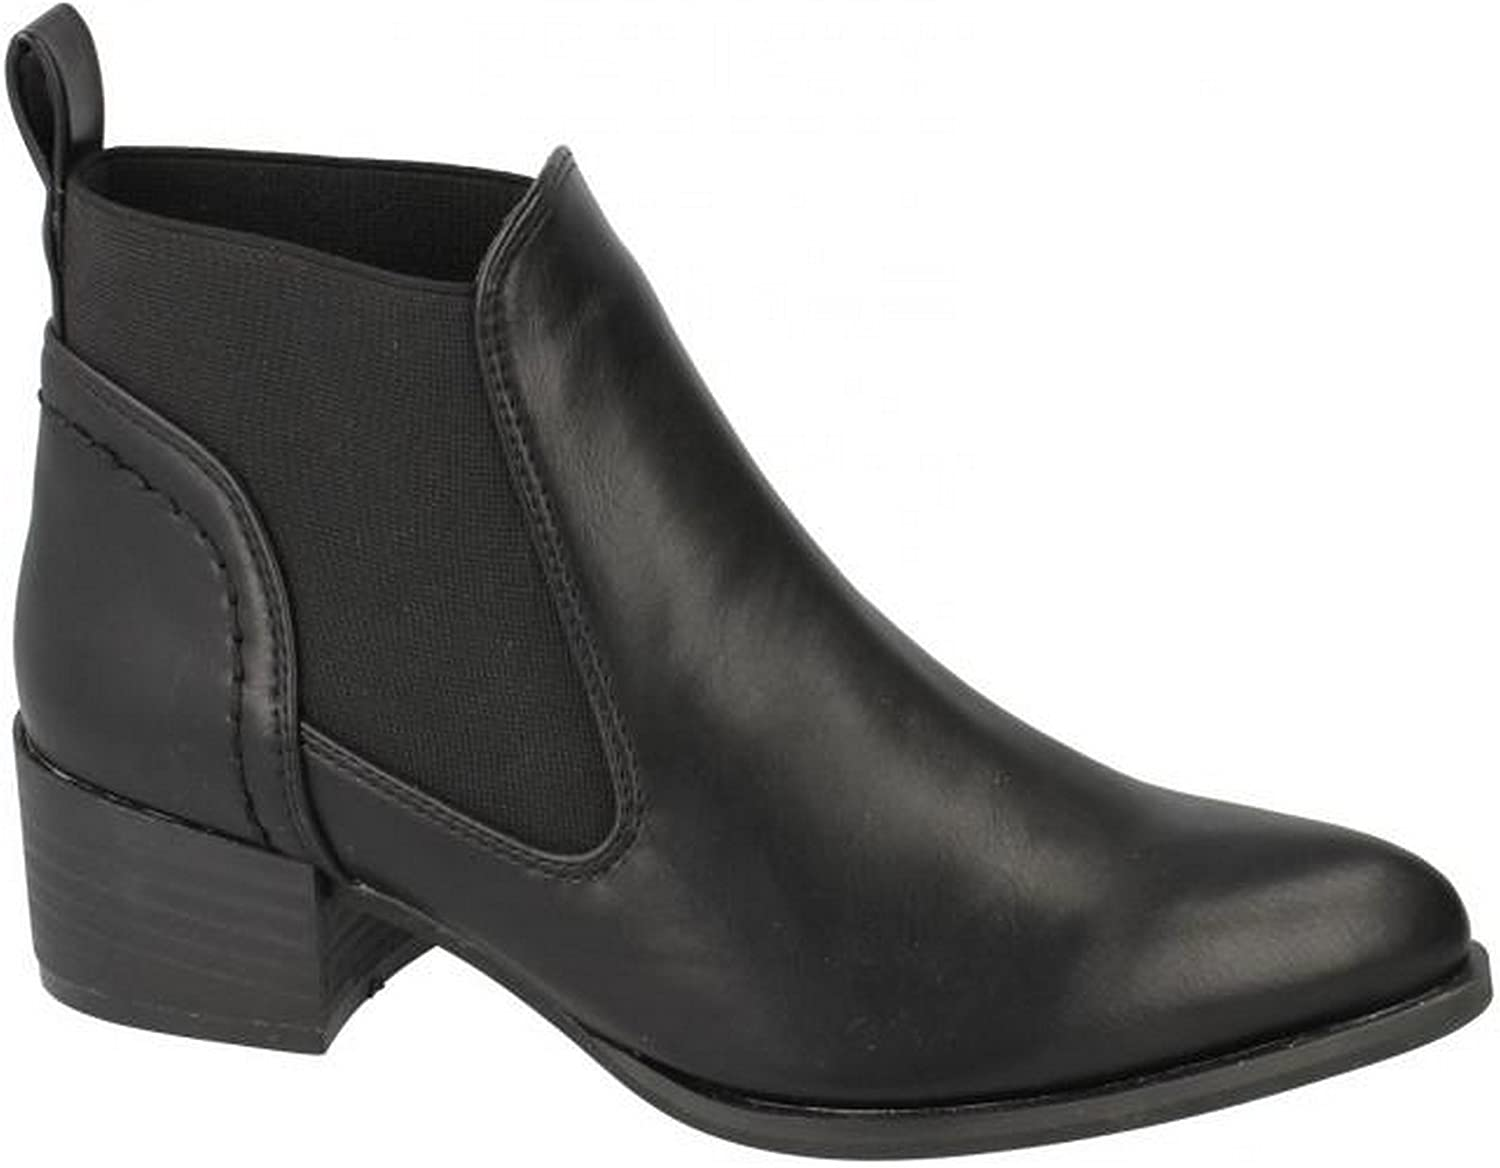 Spot On Womens Ladies Ankle Boots